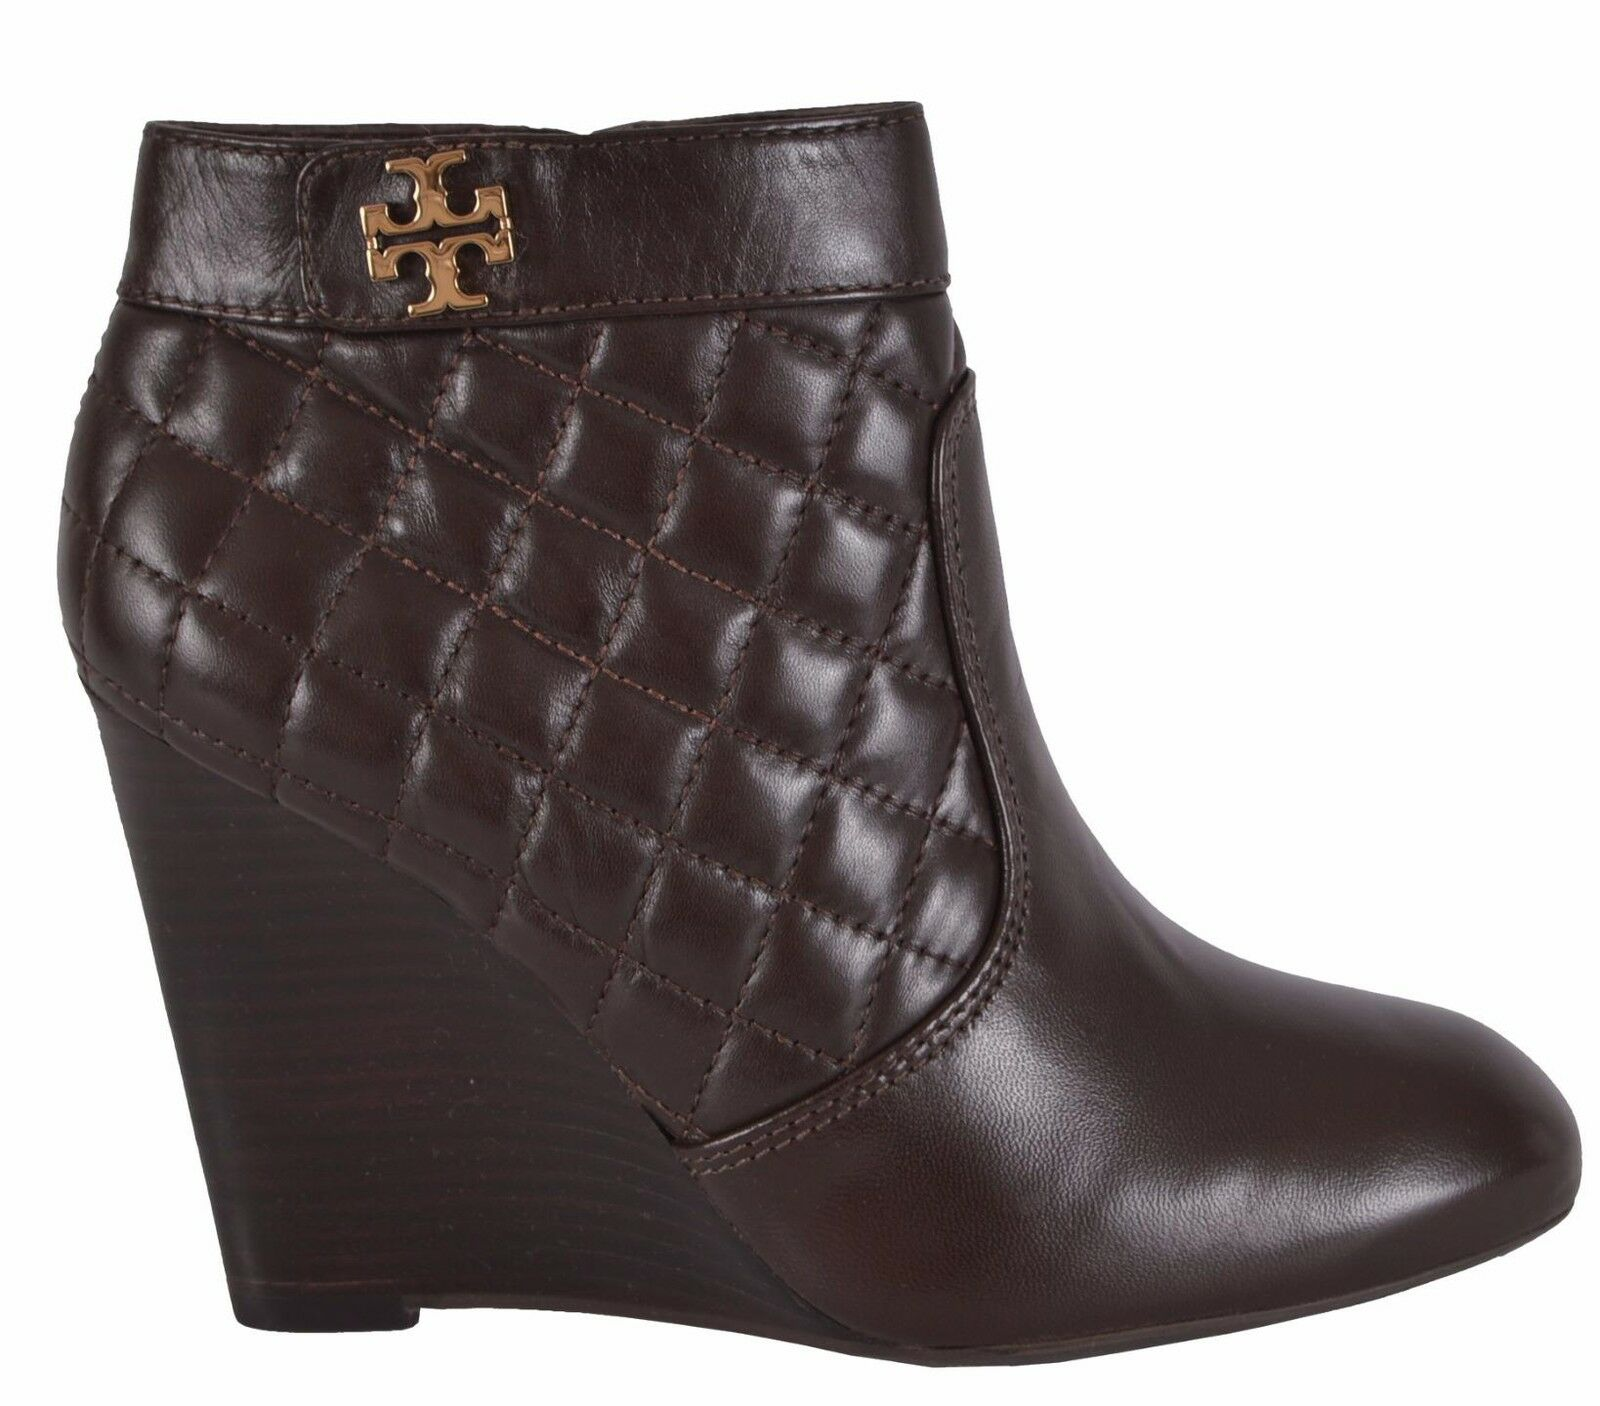 NEW Tory Burch Women's Leila Brown Quilted Leather Wedge Ankle Boots shoes 8